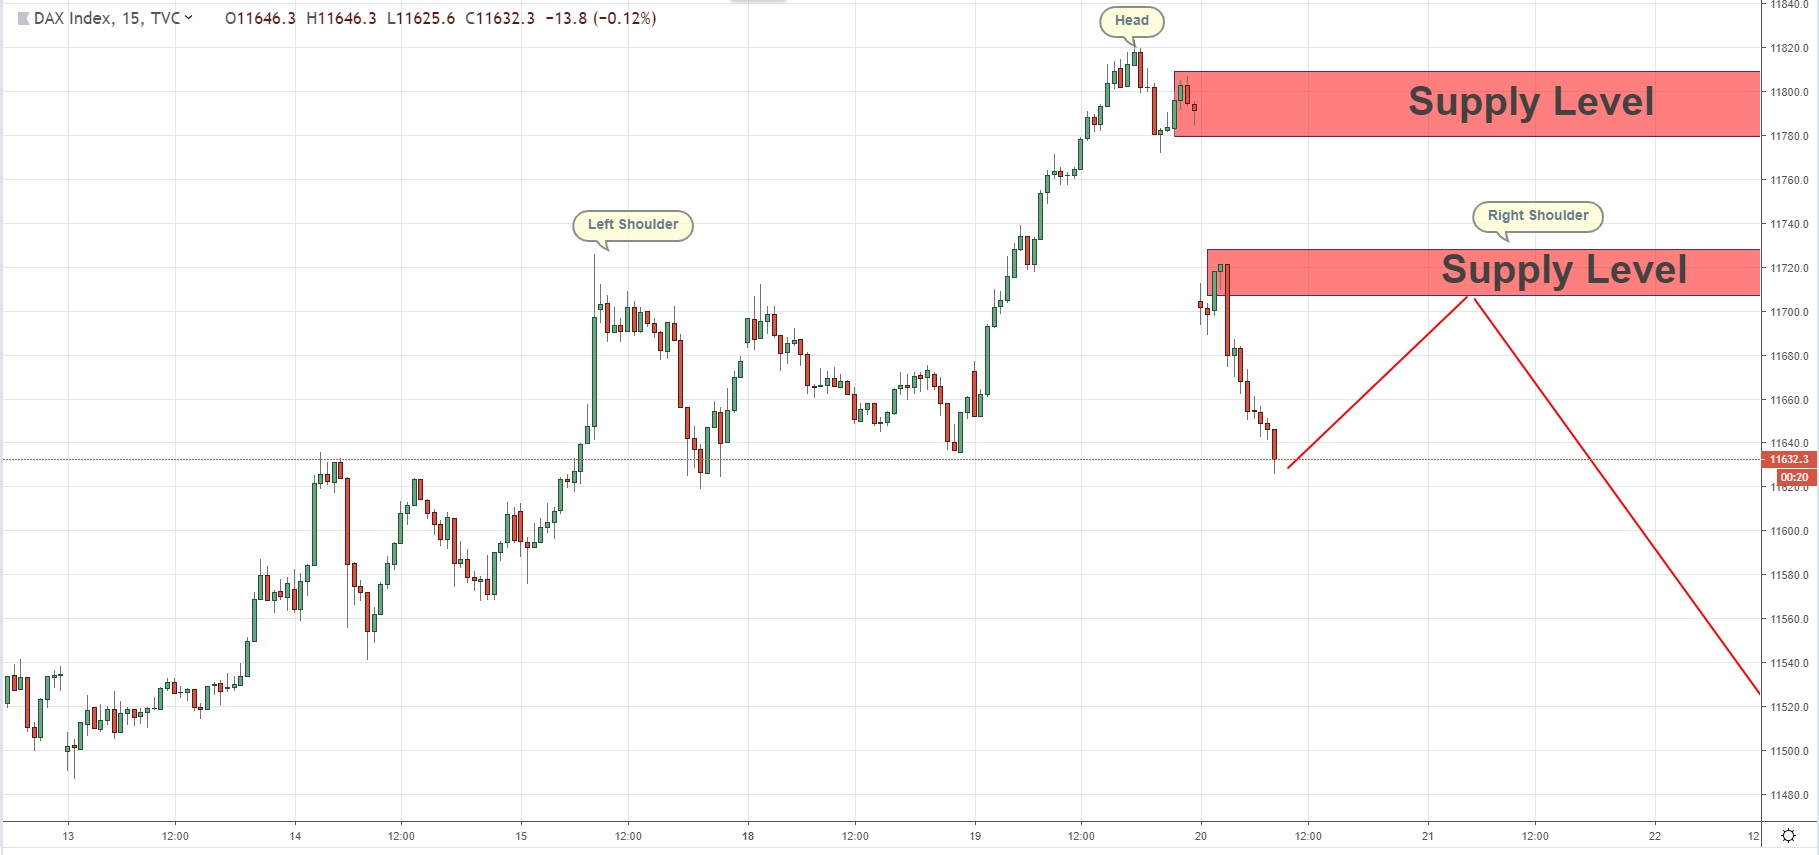 A Possibility Of Head And Shoulders Pattern On DAX 20/03/2019